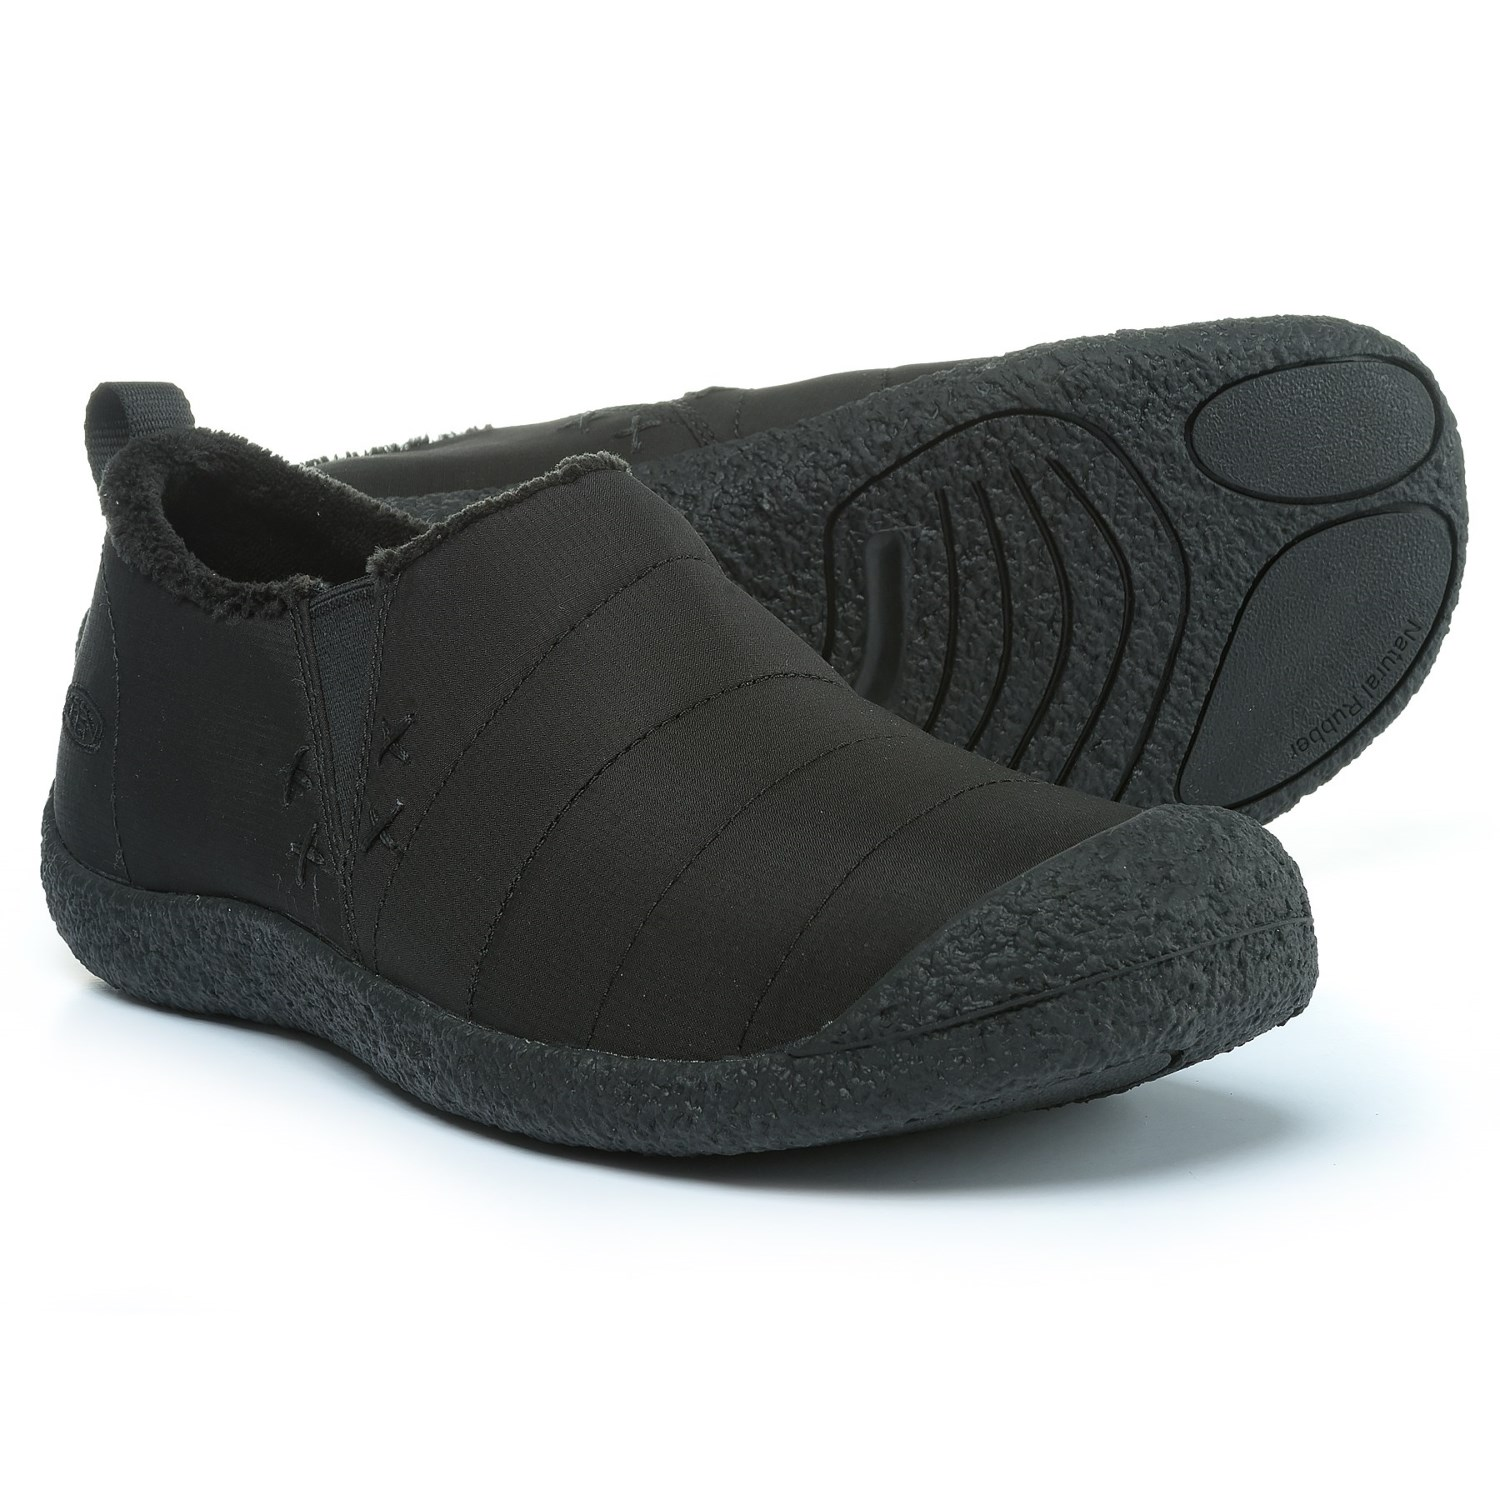 Keen Howser II Shoes - Slip-Ons (For Men) in Monocrome Black